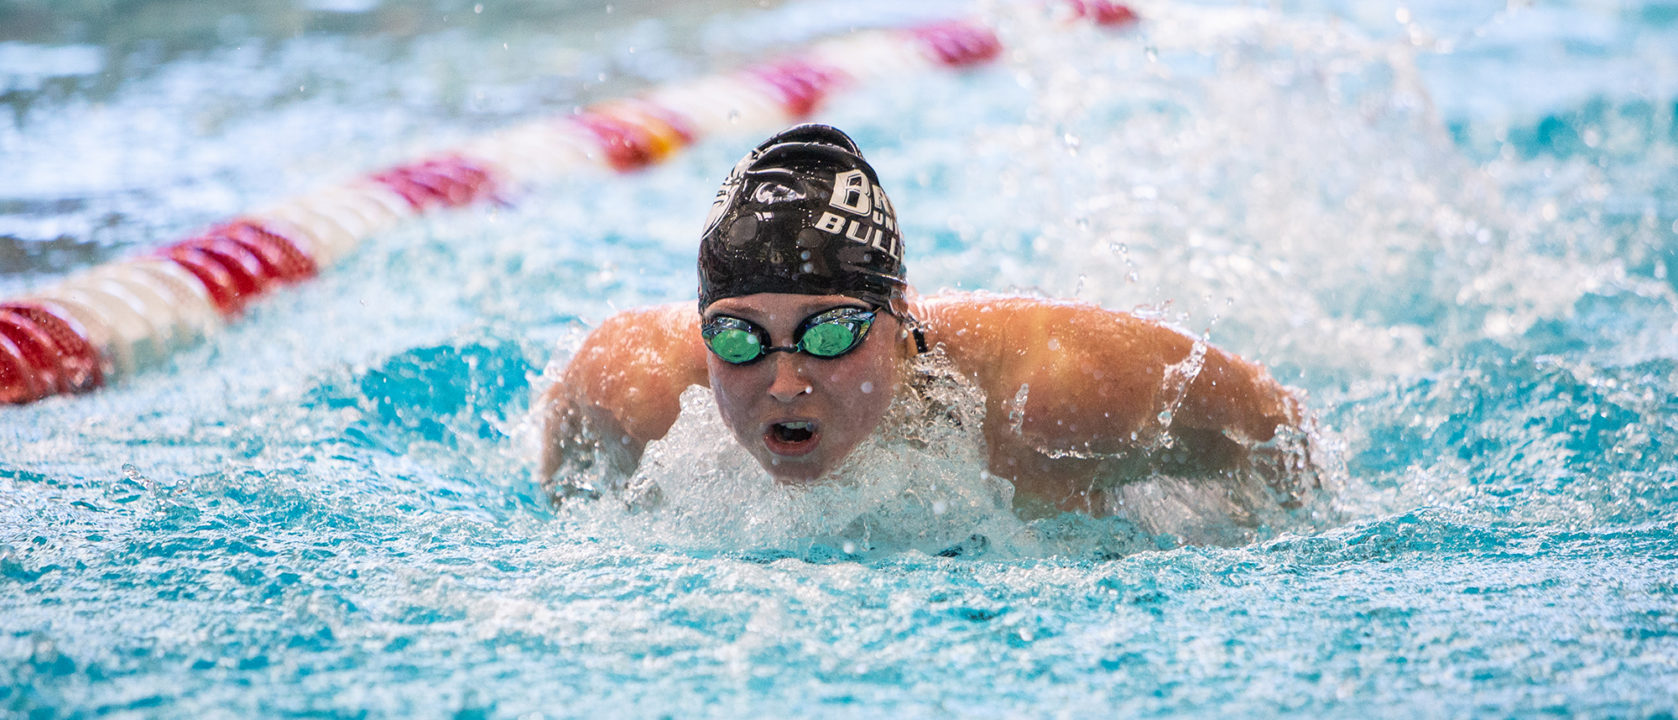 2021 NEC Championships: Bryant Holds Team Leads Through Swimming Day 1